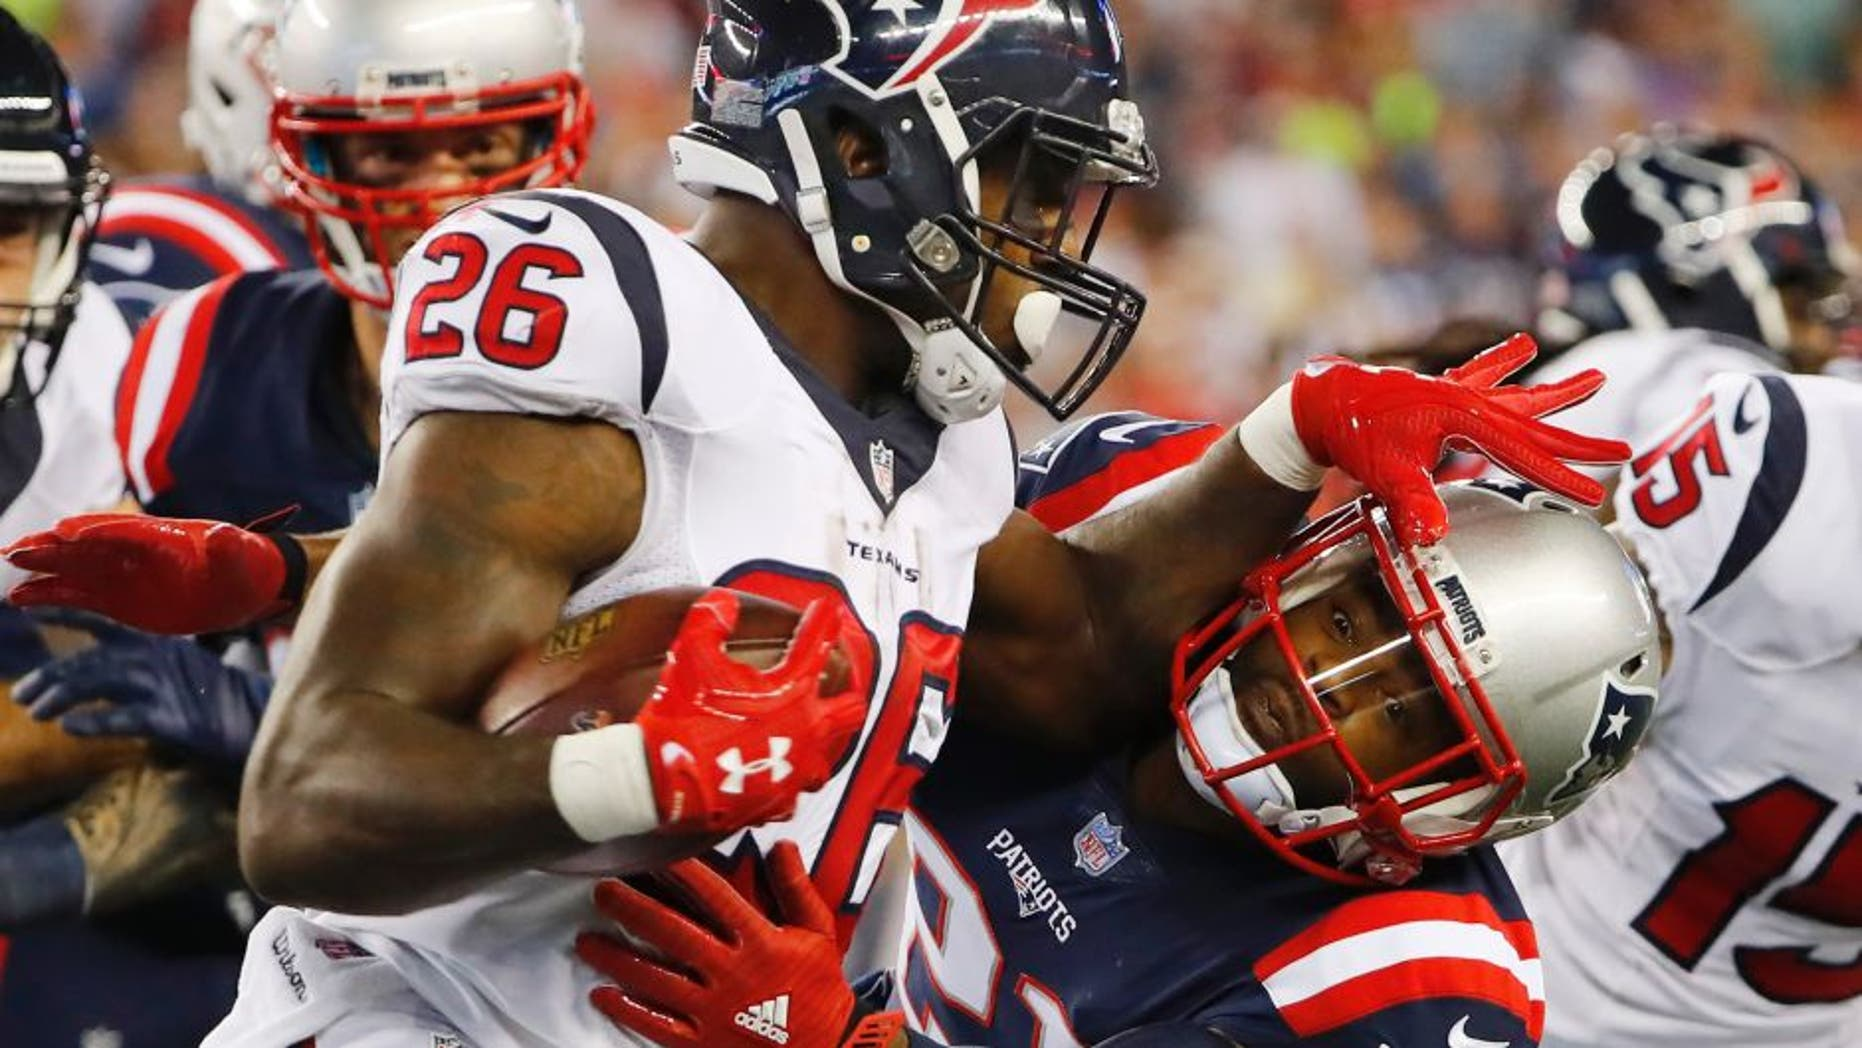 Sep 22, 2016; Foxborough, MA, USA; Houston Texans running back Lamar Miller (26) tries to push away New England Patriots cornerback Malcolm Butler (21) during the first half at Gillette Stadium. Mandatory Credit: Winslow Townson-USA TODAY Sports